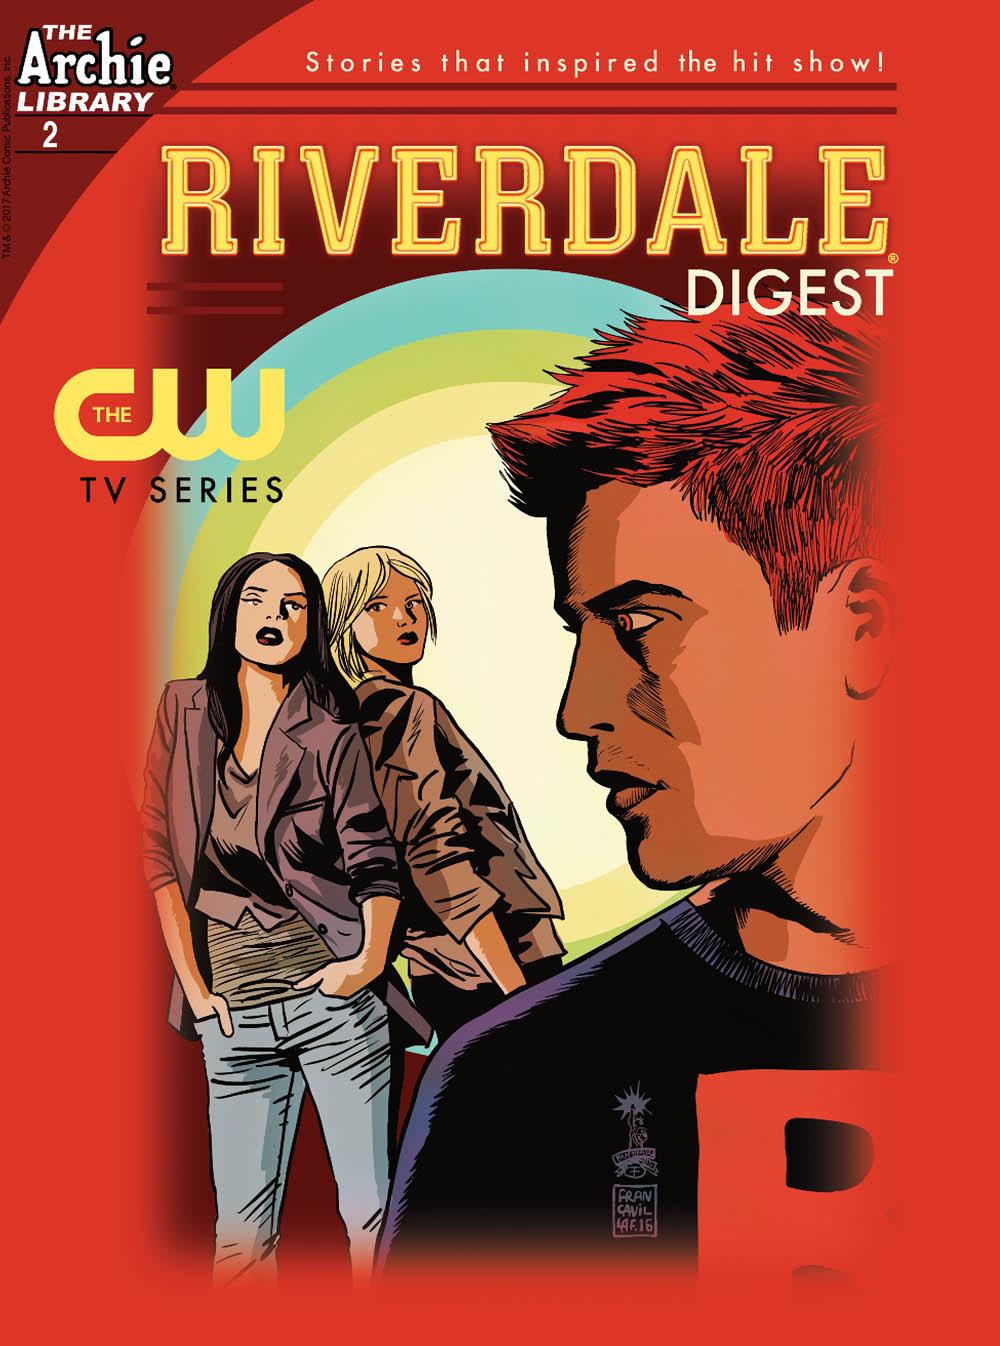 John persons comics for sale - Riverdale Digest 2 See How Everything Led To The Cw S Riverdale Tv Show With This Digest Sized Collection Featuring Stories From Our Recently Relaunched